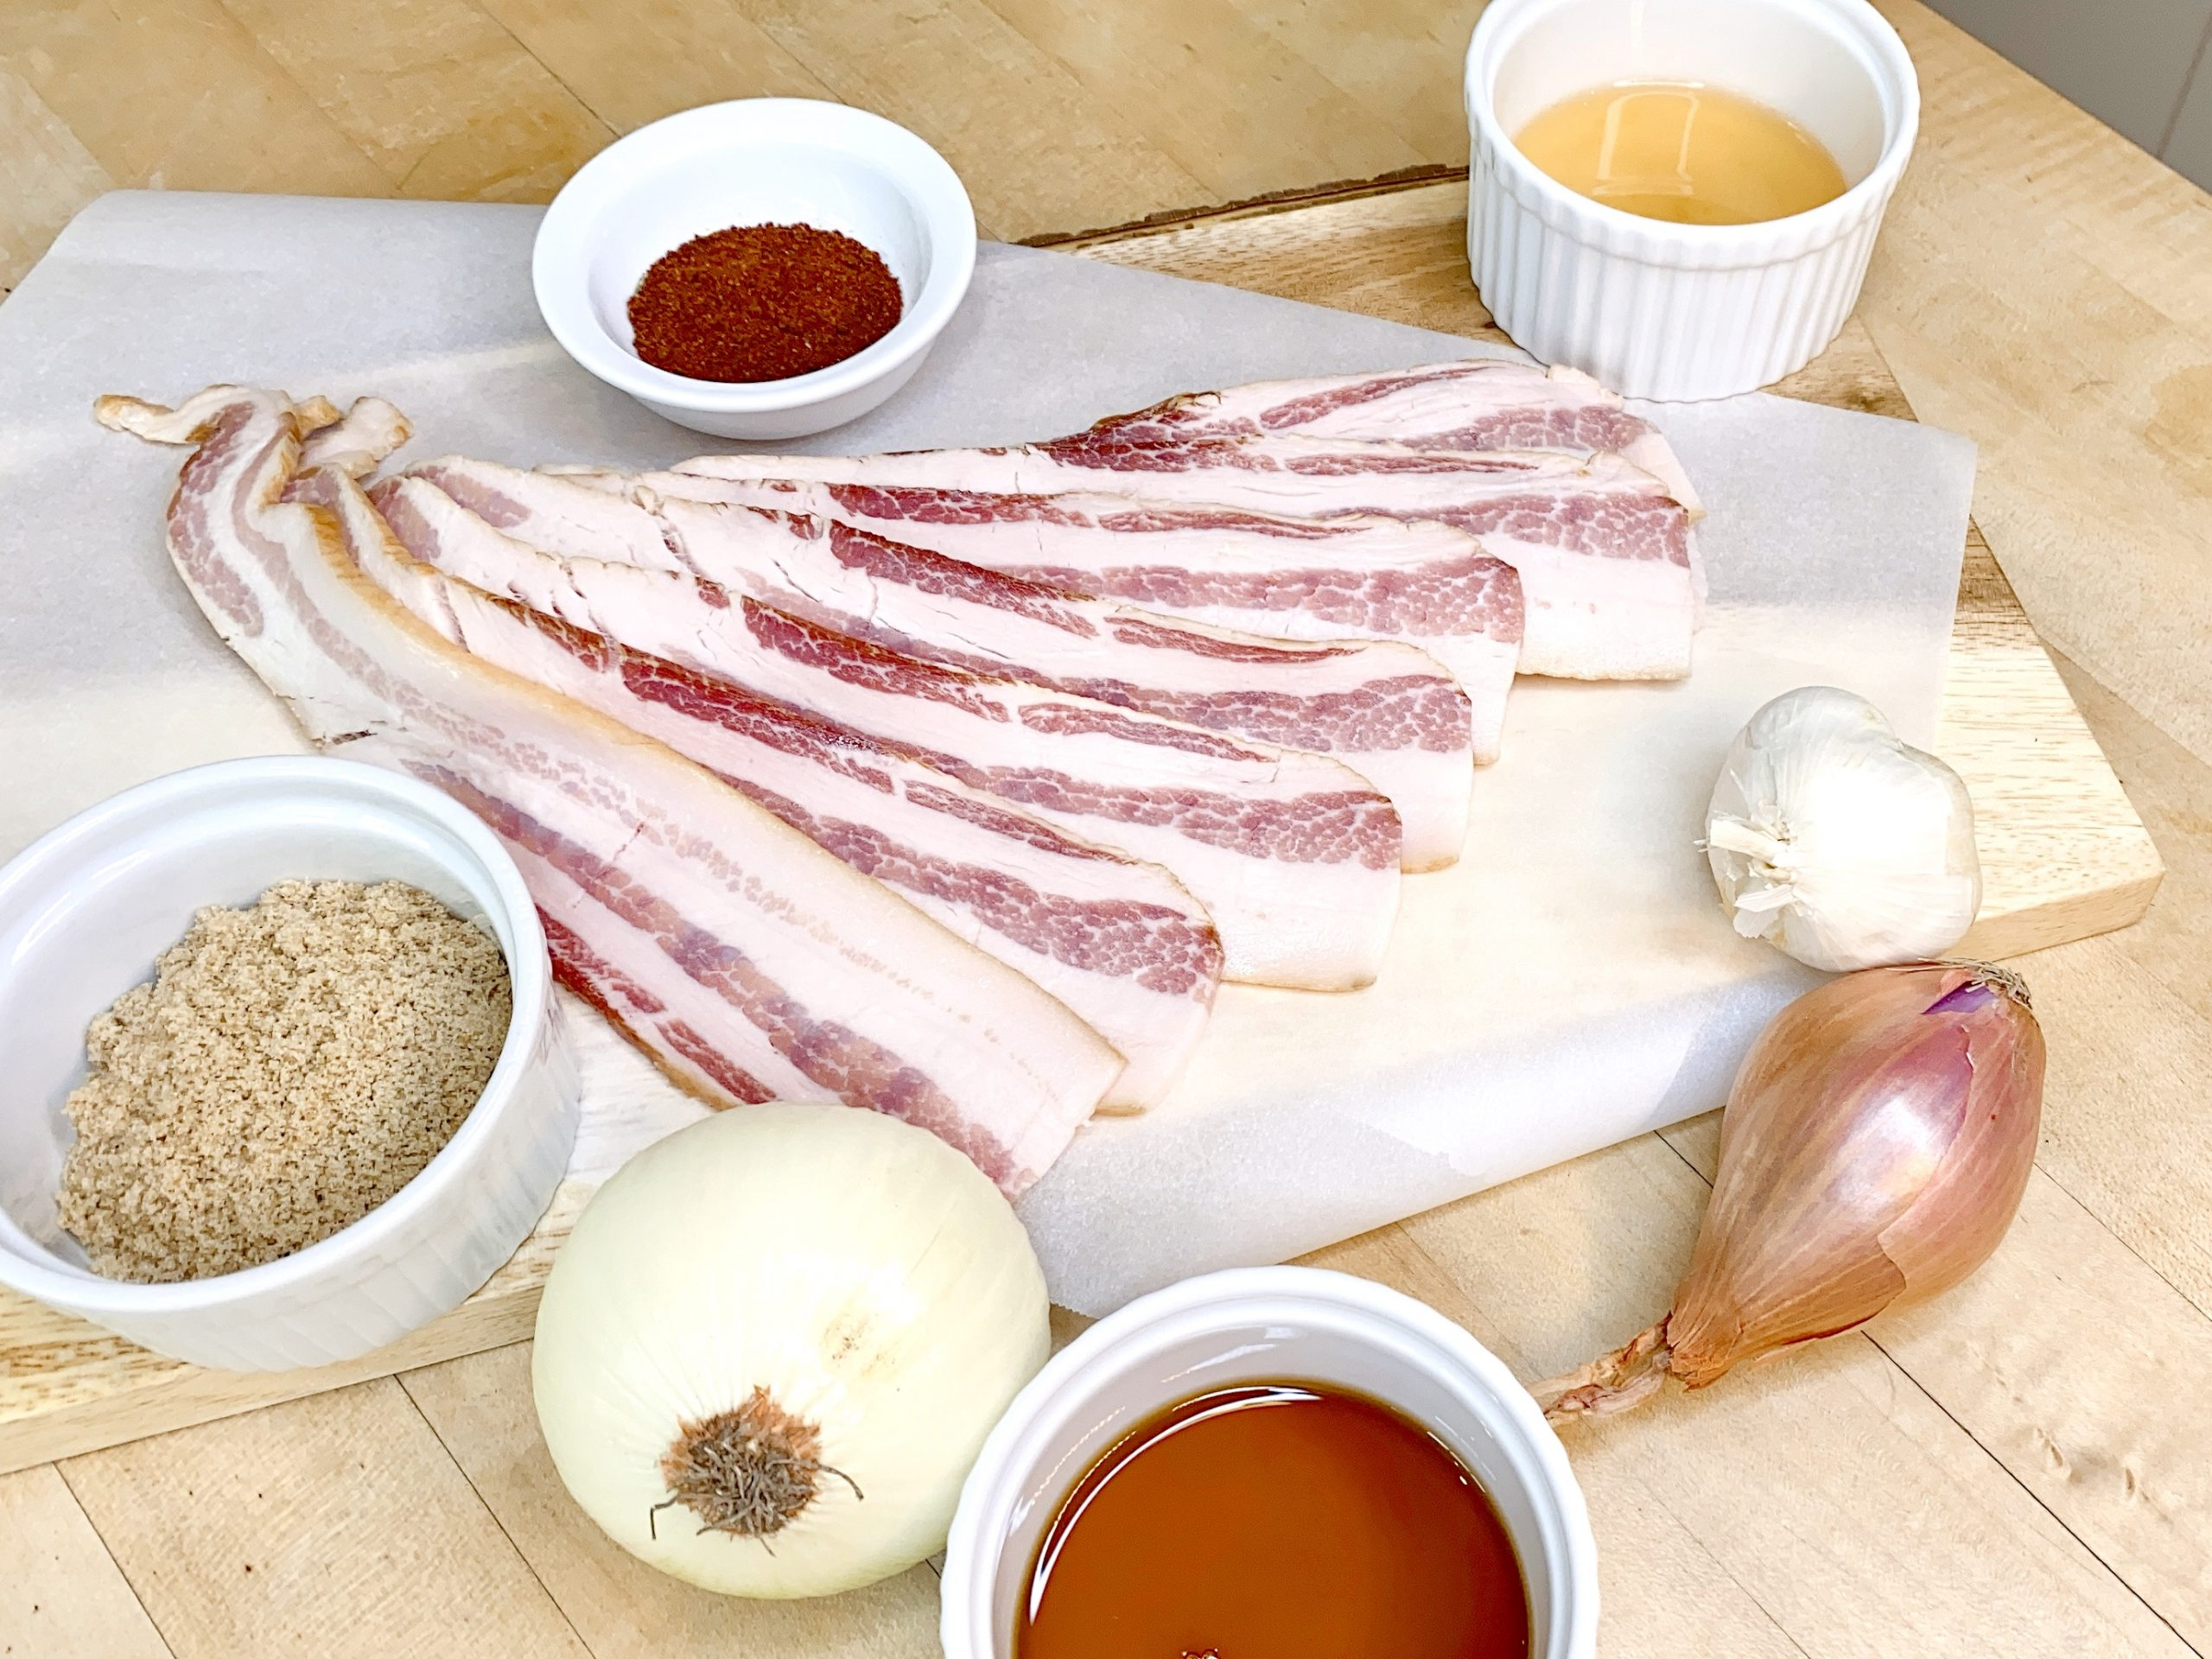 ingredients for making recipe for bacon jam including bacon, onion, shallot, garlic, brown sugar, maple syrup, cider vinegar and chili powder.